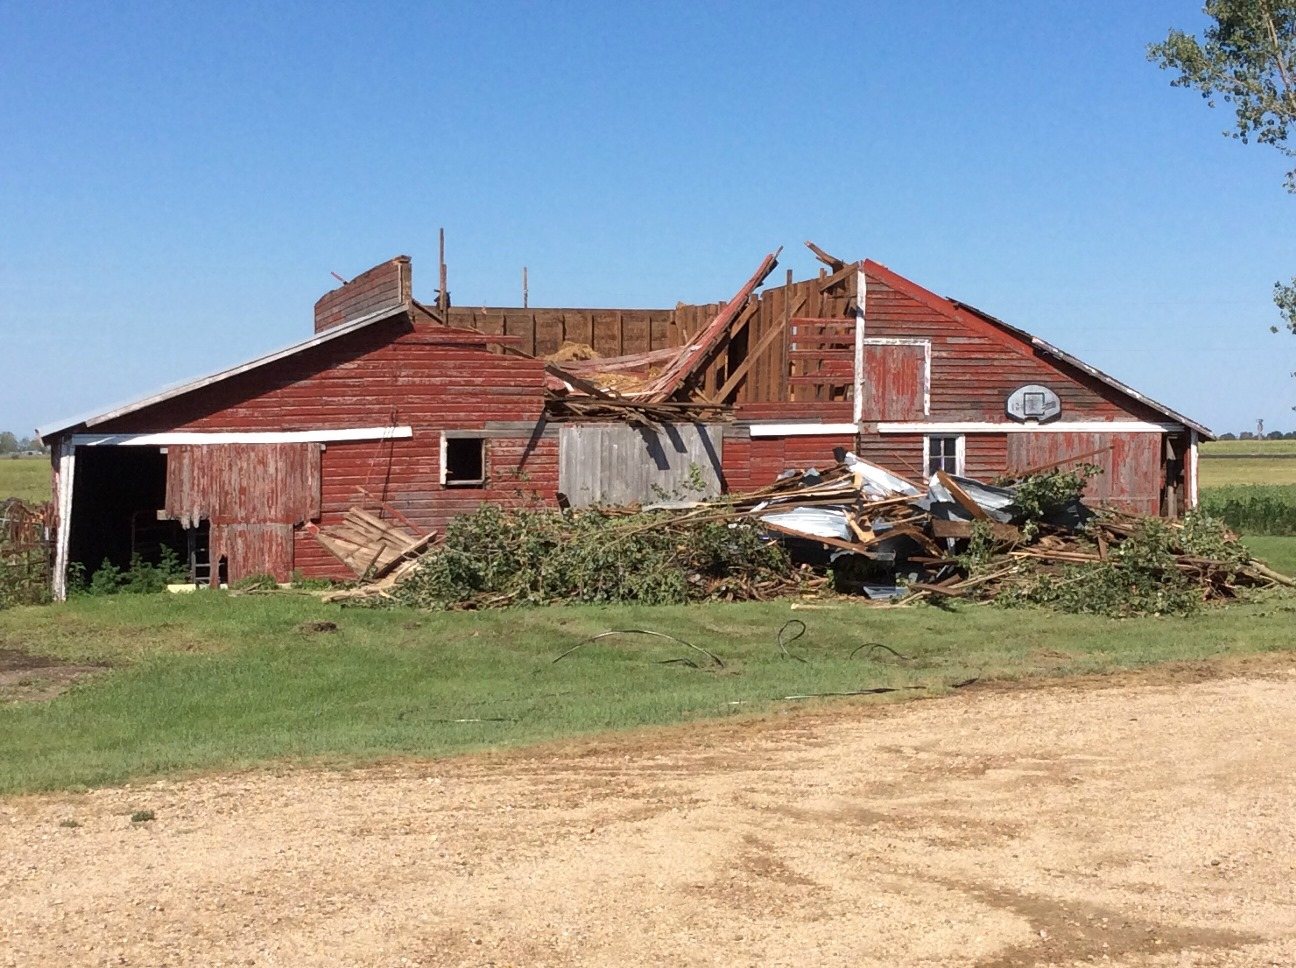 Damage to a barn located 1 mile east of Andover